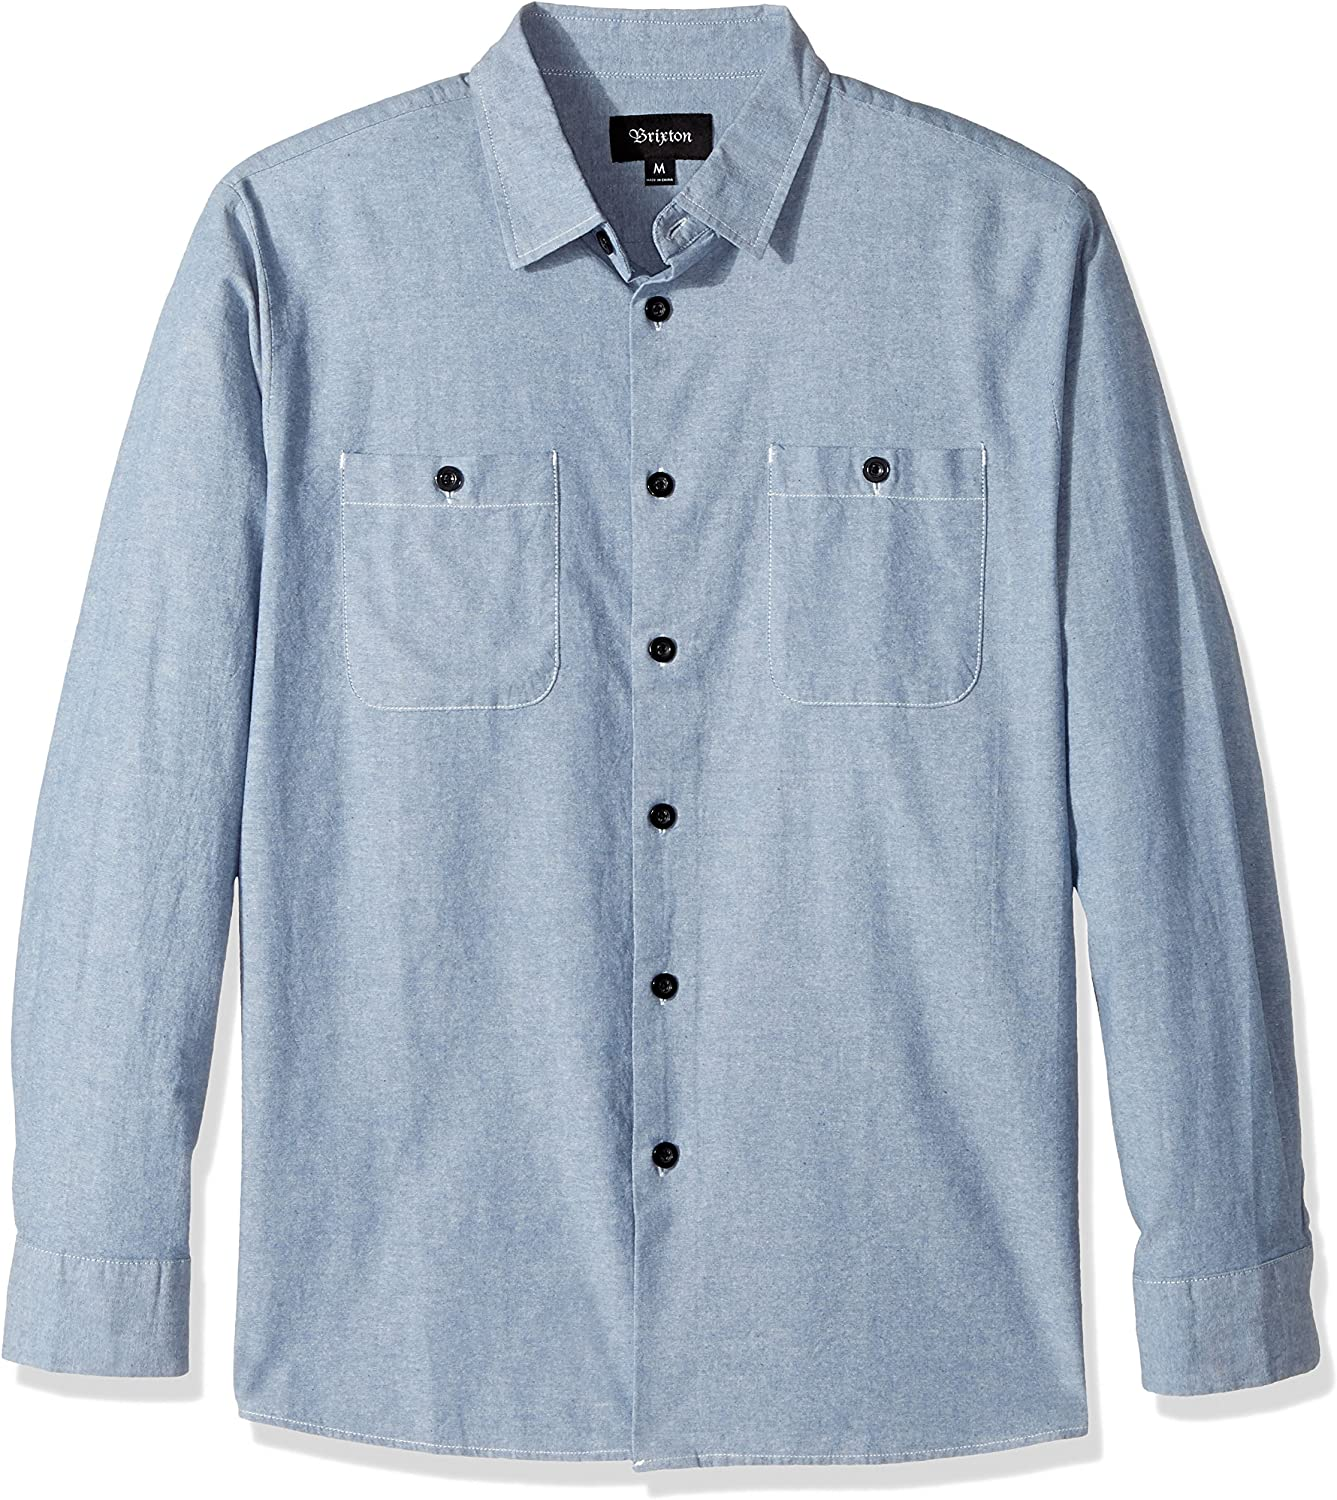 Brixton Mens Reeve Relaxed Fit Long Sleeve Woven Shirt Button-Down Shirt